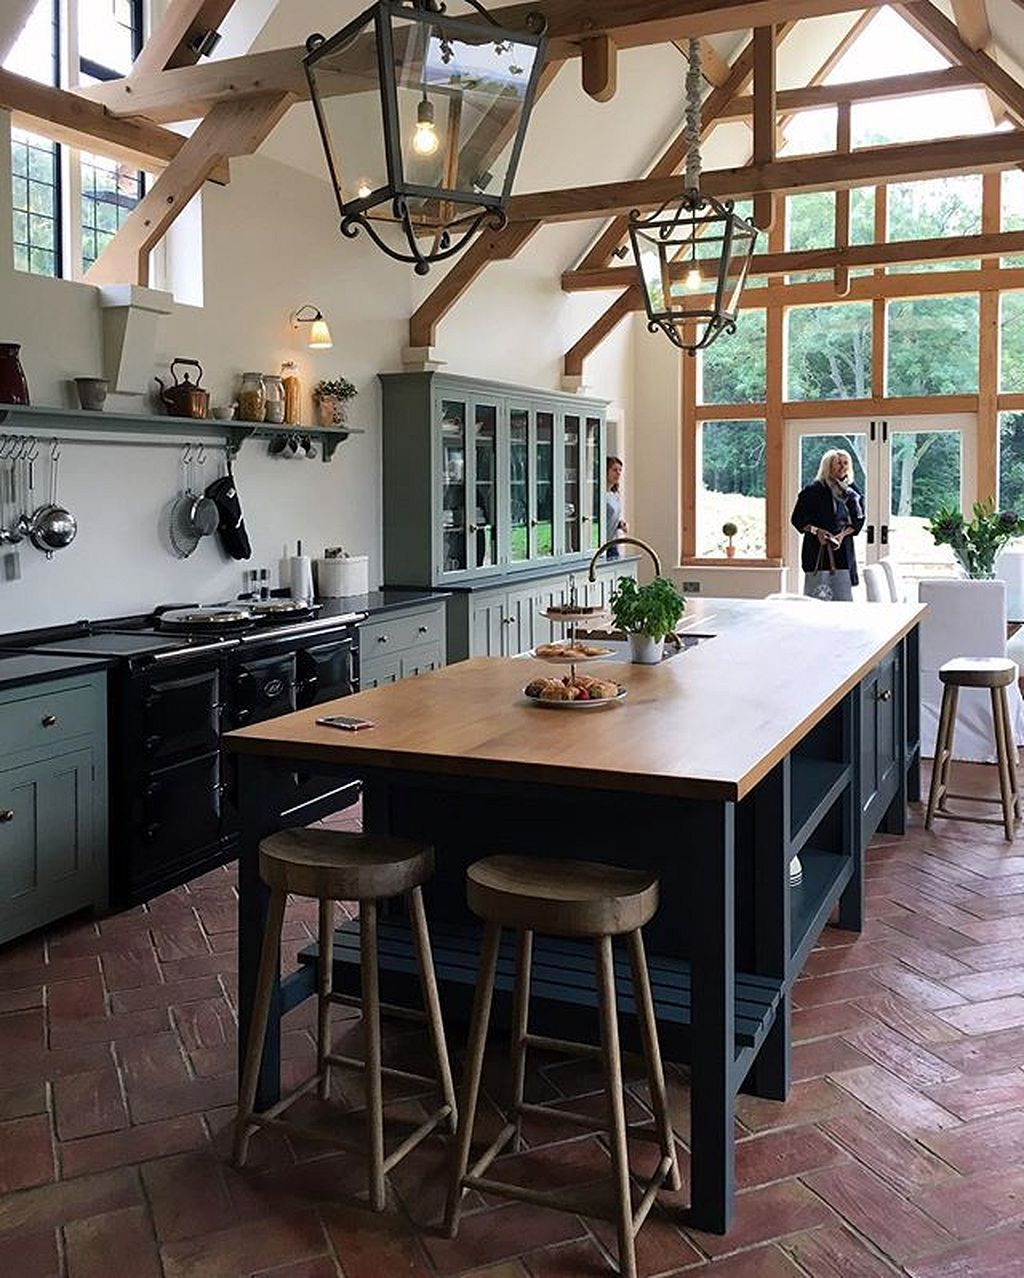 Bon Gorgeous 60+ English Country Kitchen Decor Ideas Https://kidmagz.com/